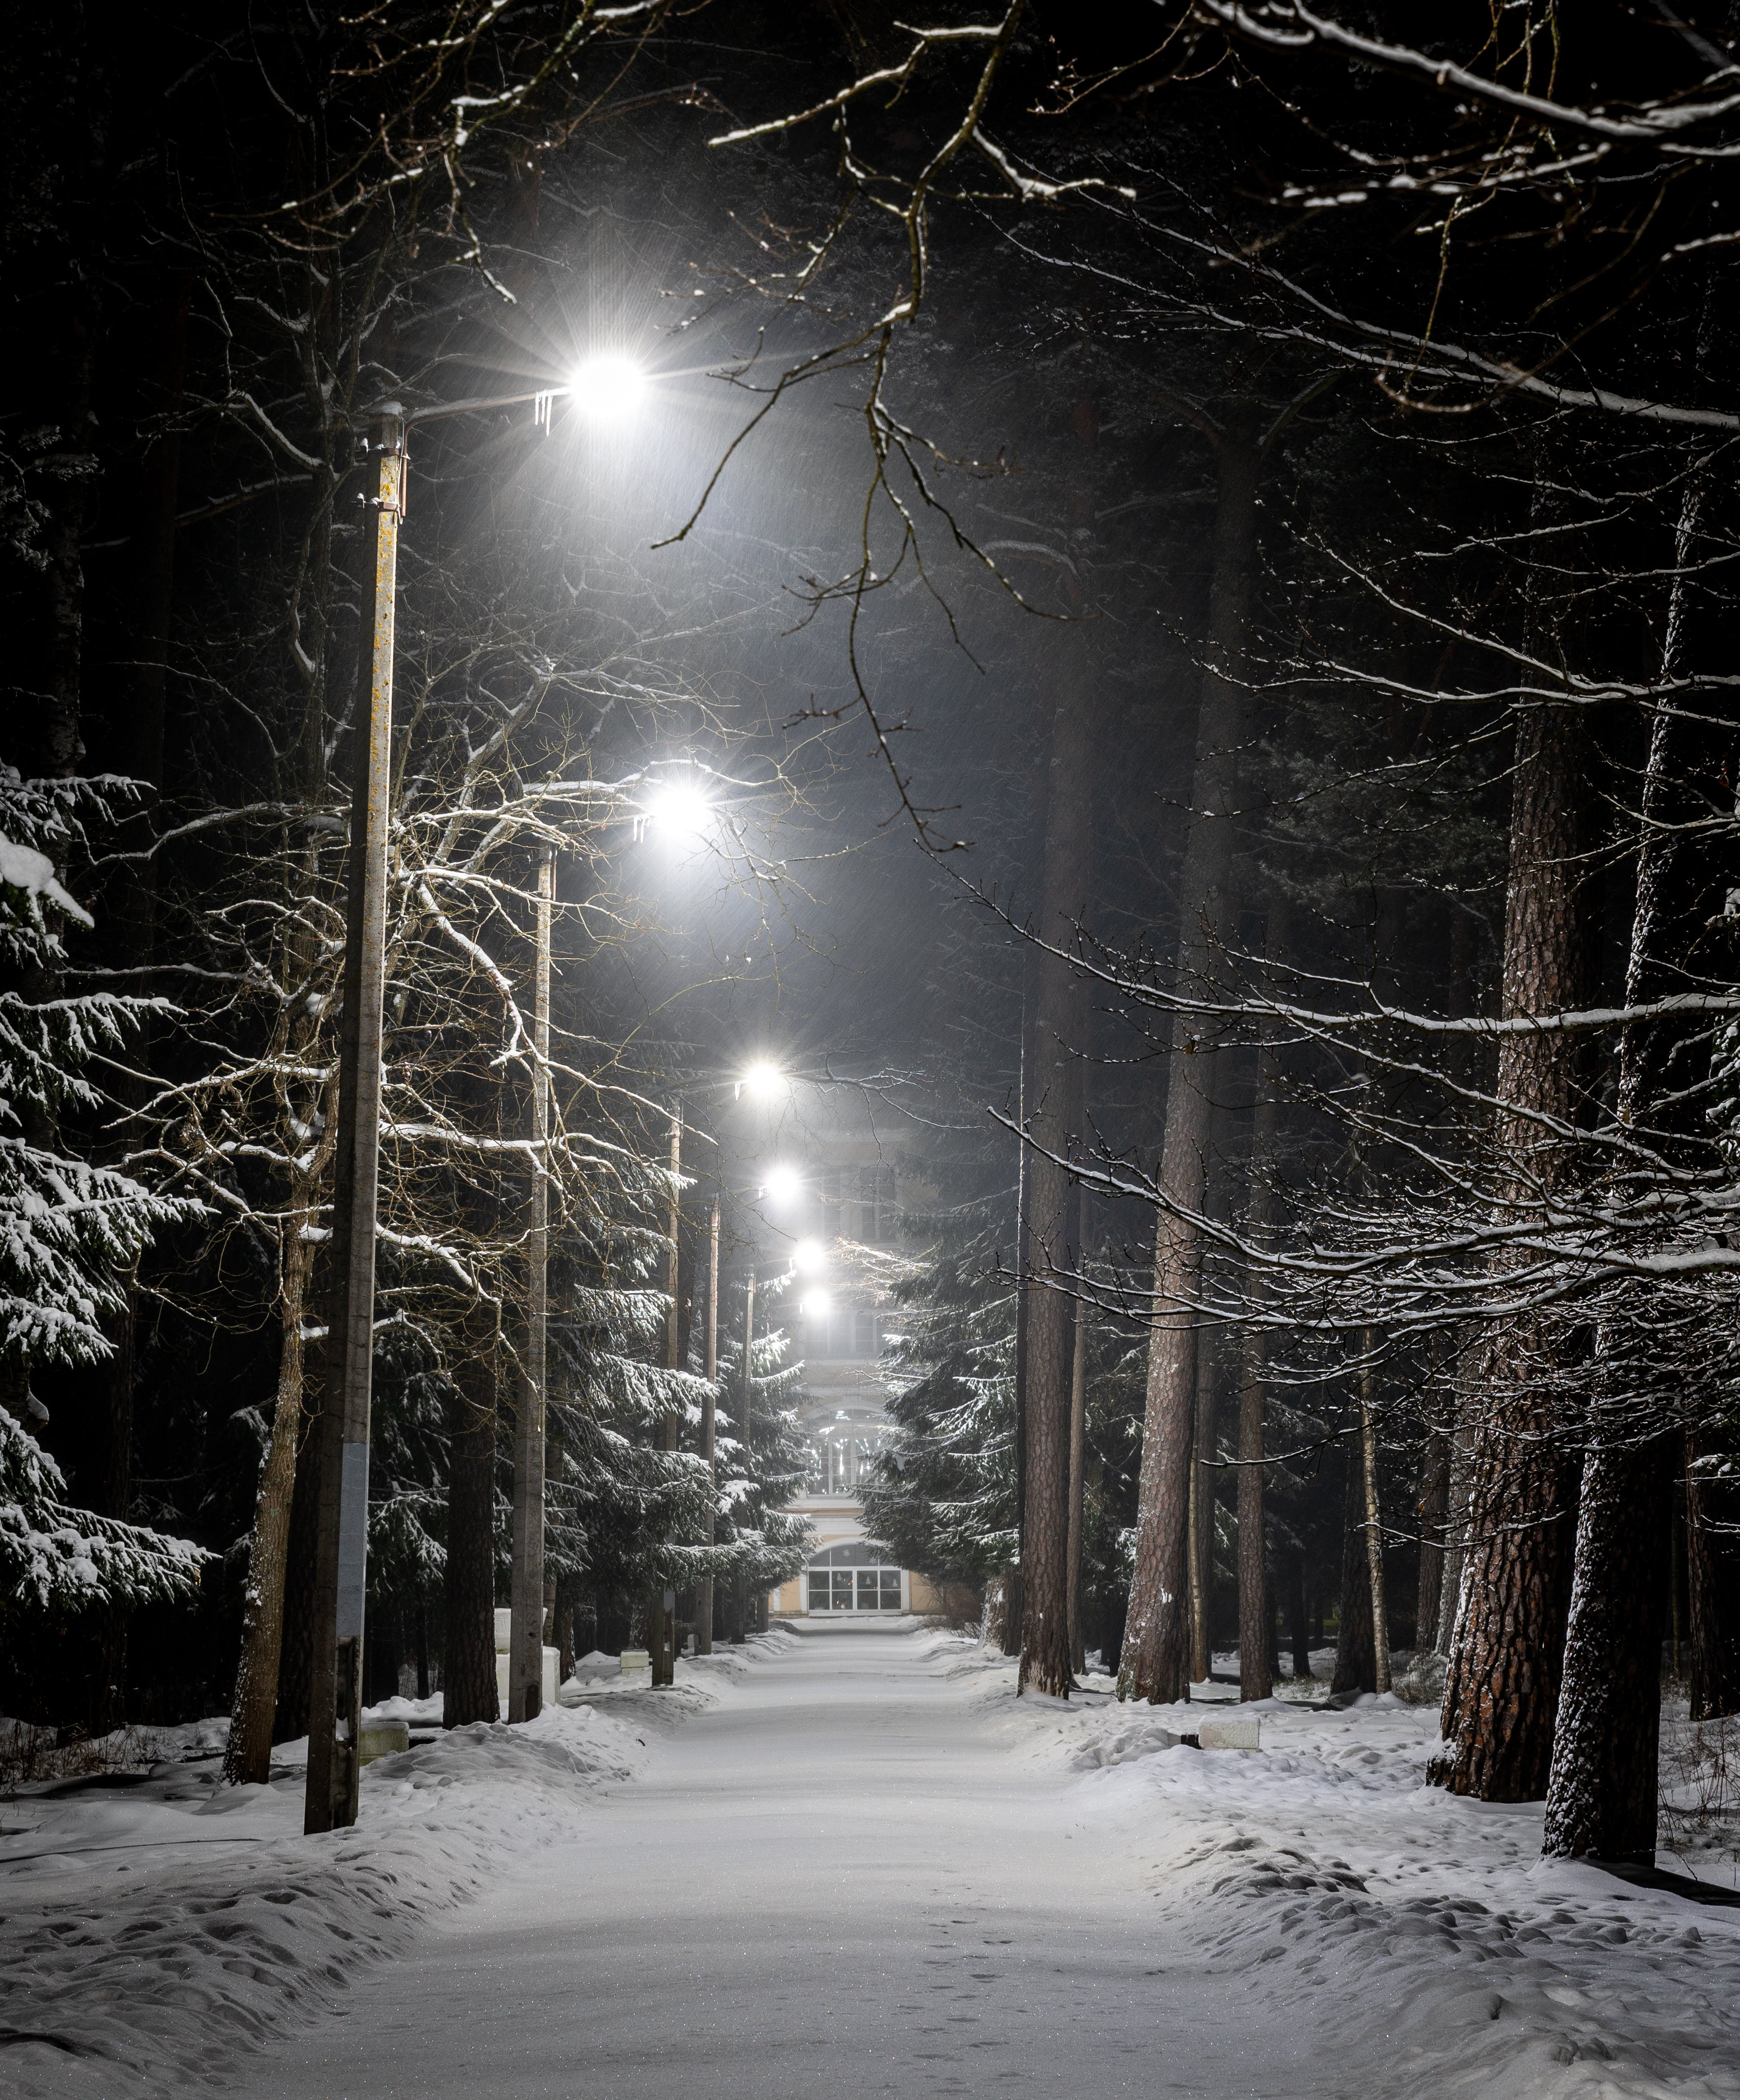 Photo of Pavement With Street Lights During Winter